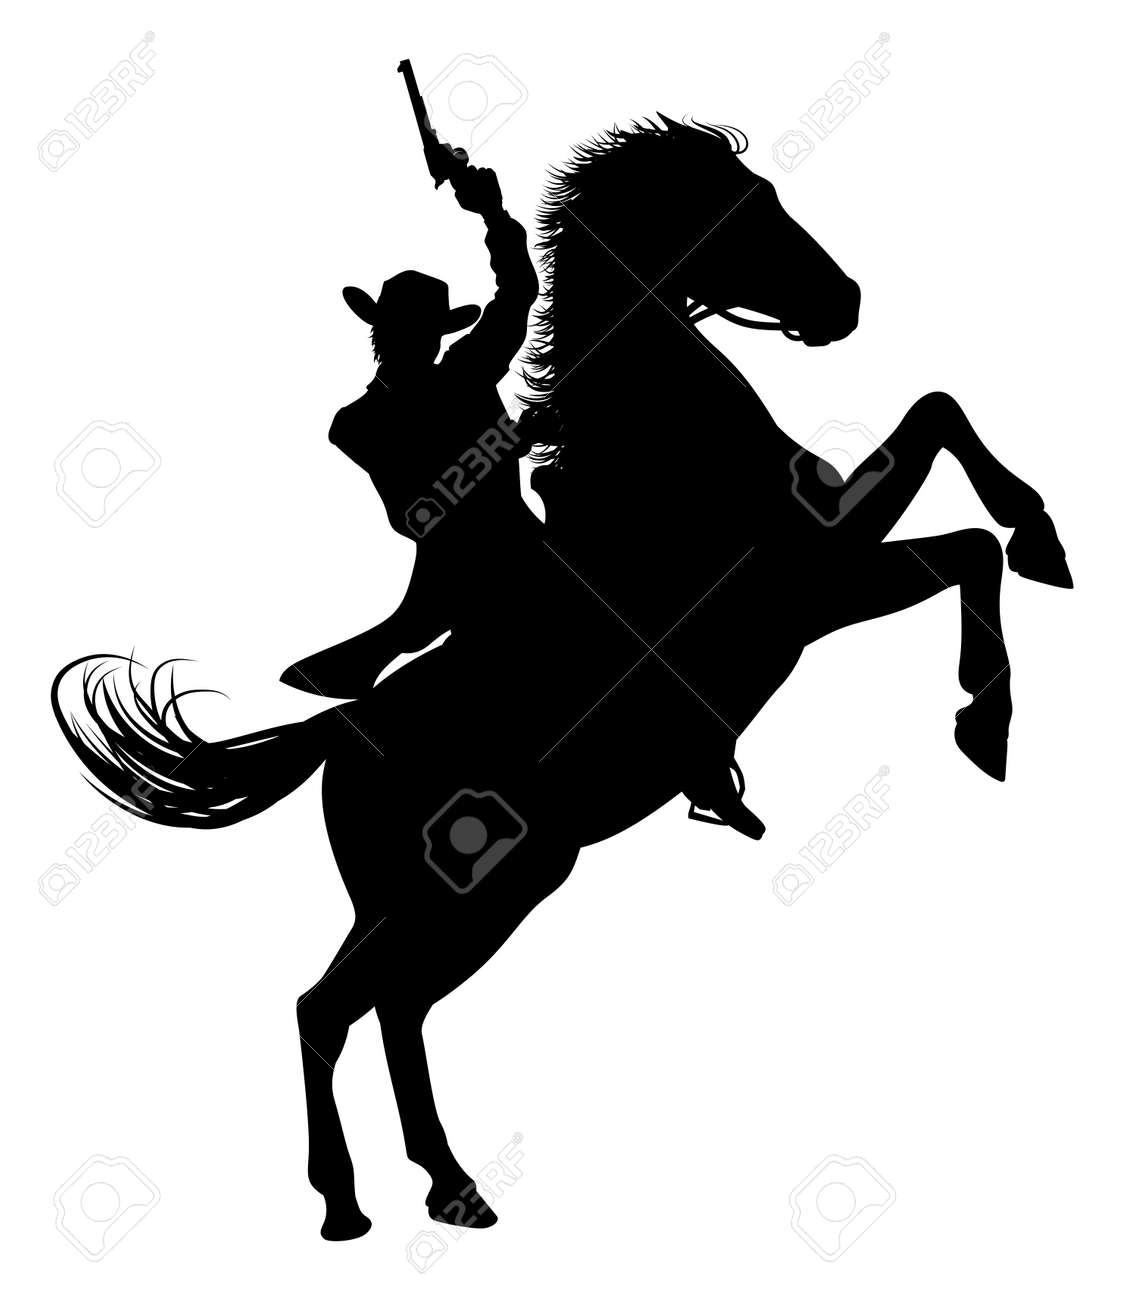 Cowboy Riding Horse Silhouette Royalty Free Cliparts Vectors And Stock Illustration Image 132783914